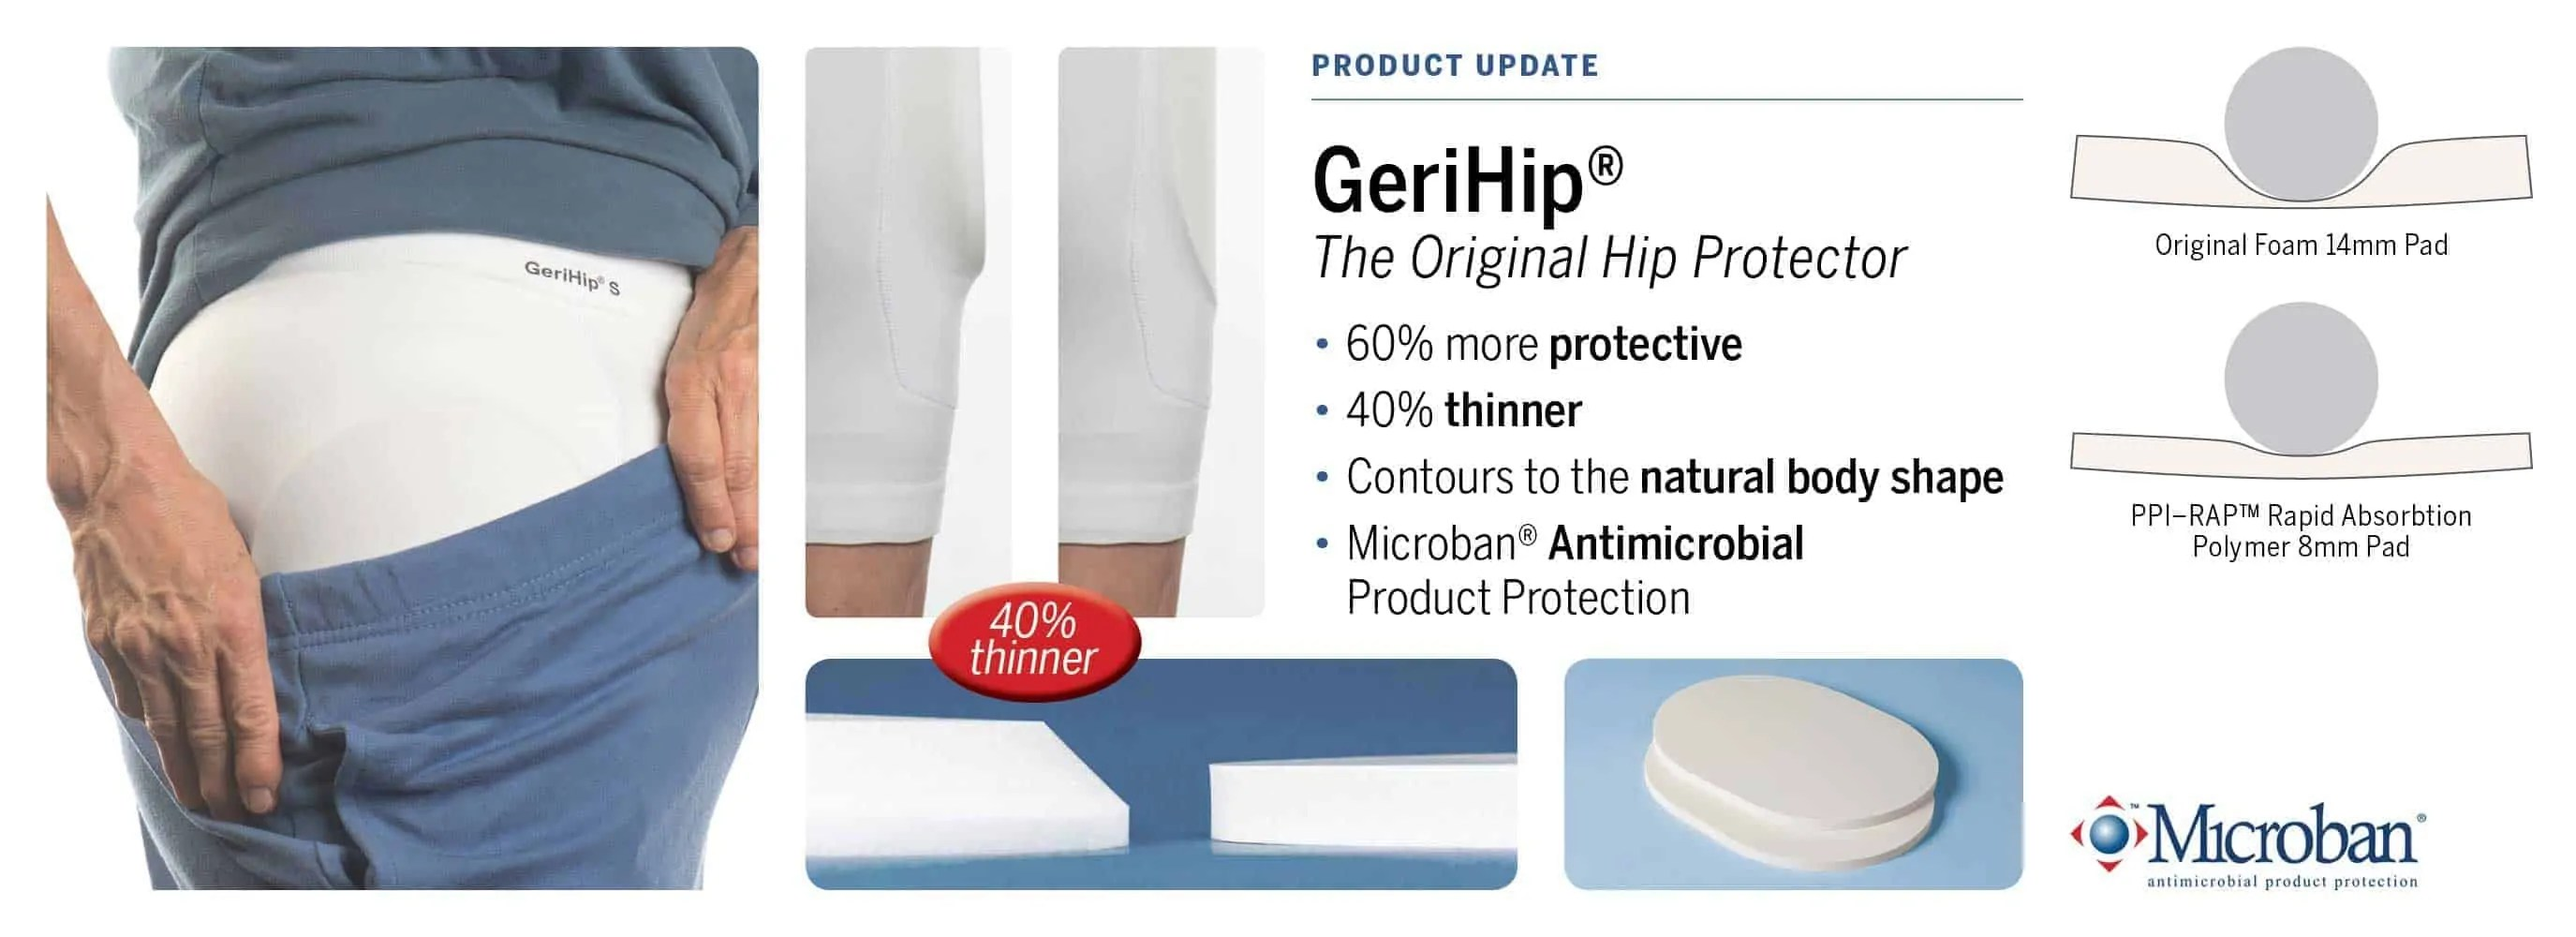 Geri Hip Product Overview